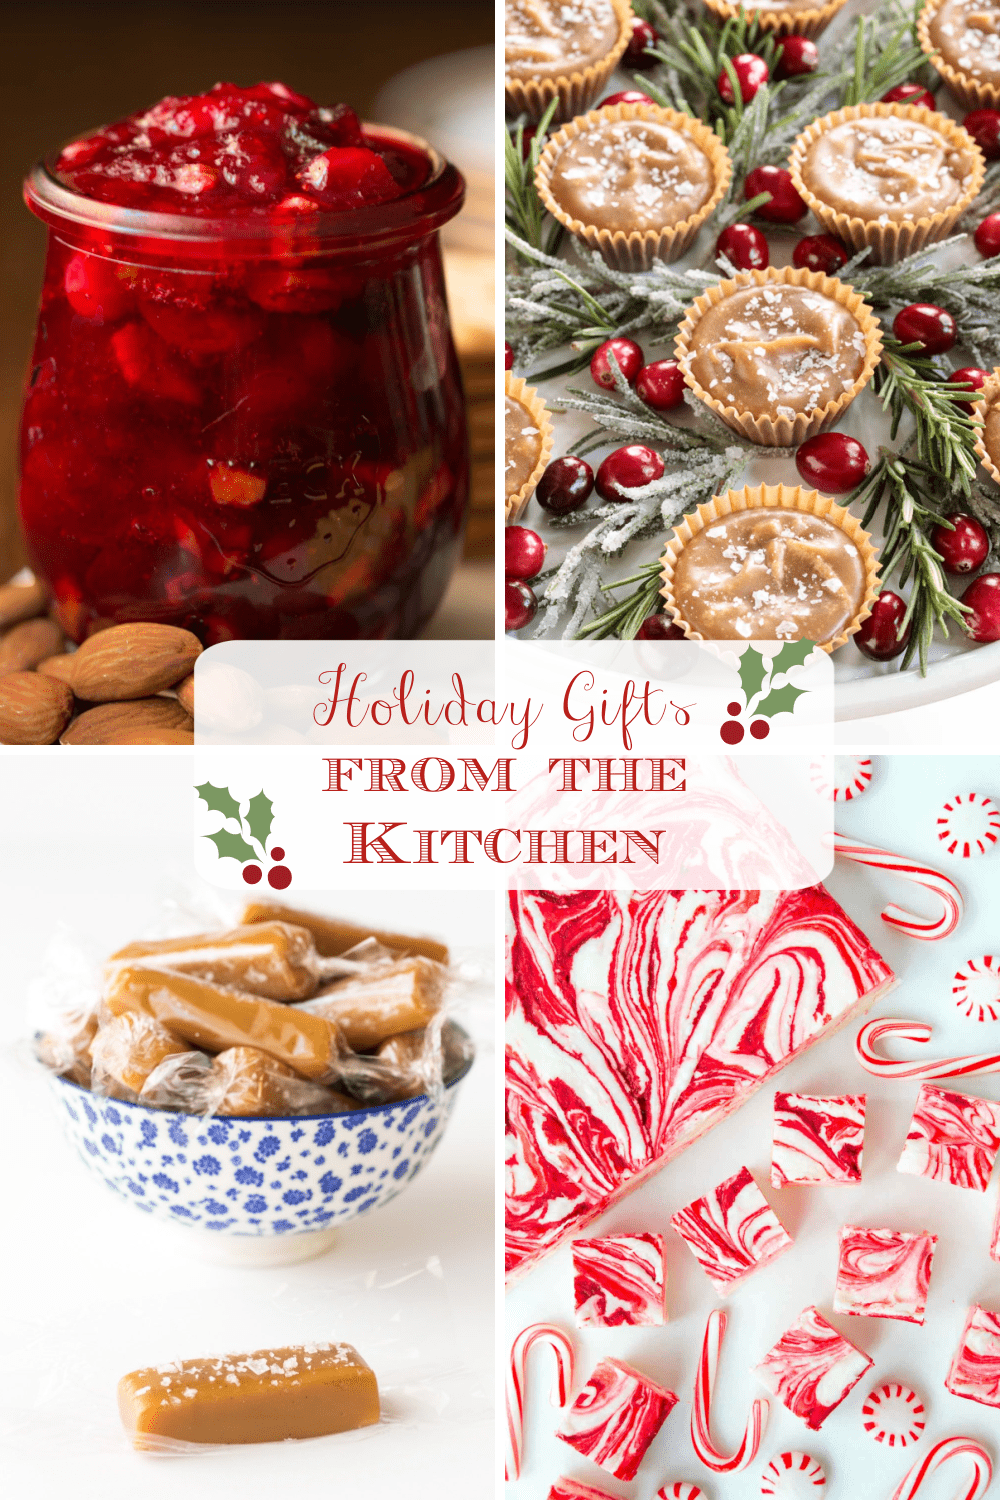 Holiday Gift Ideas - from the Kitchen!